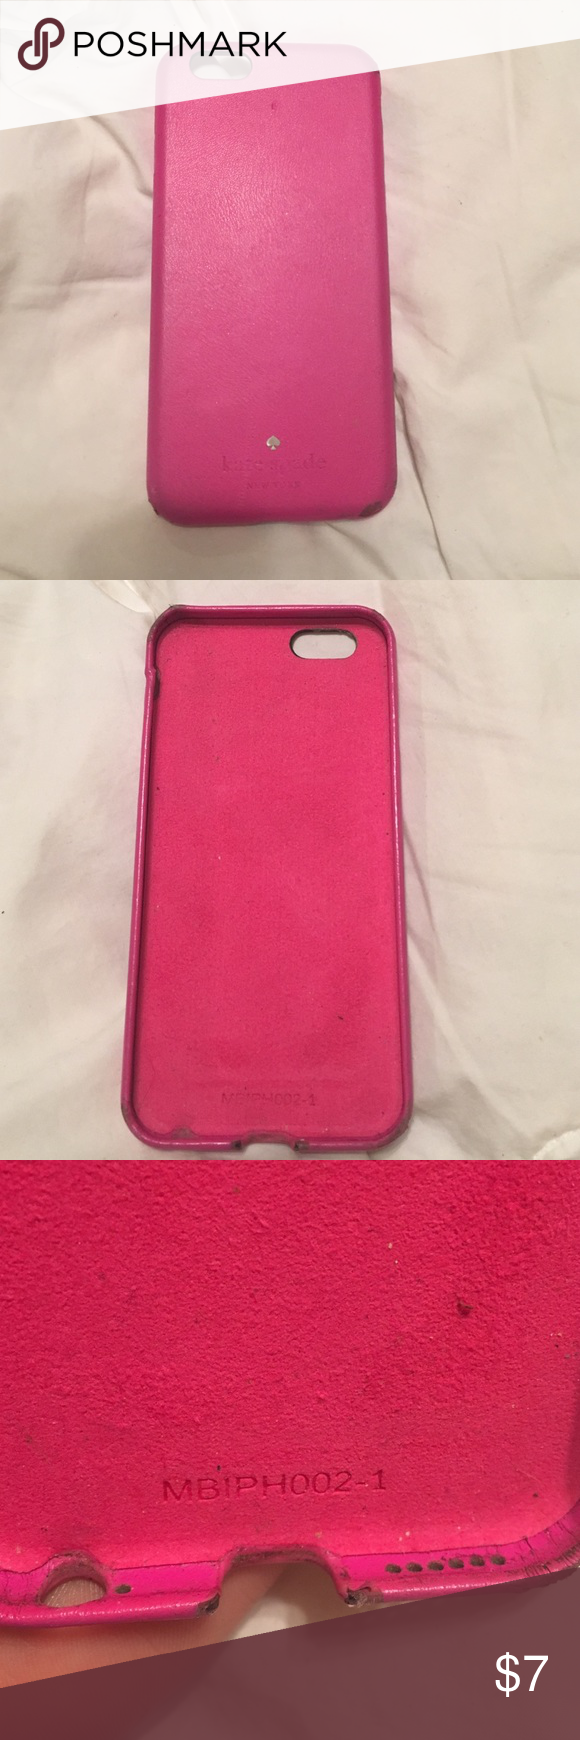 Kate spade iPhone 6/6S phone case Pink. Kate spade iPhone 6/6S phone case. It's definitely used. Has some scuffs on corners which is why it is very cheap. However, it's not in horrible condition so here it is :) kate spade Accessories Phone Cases